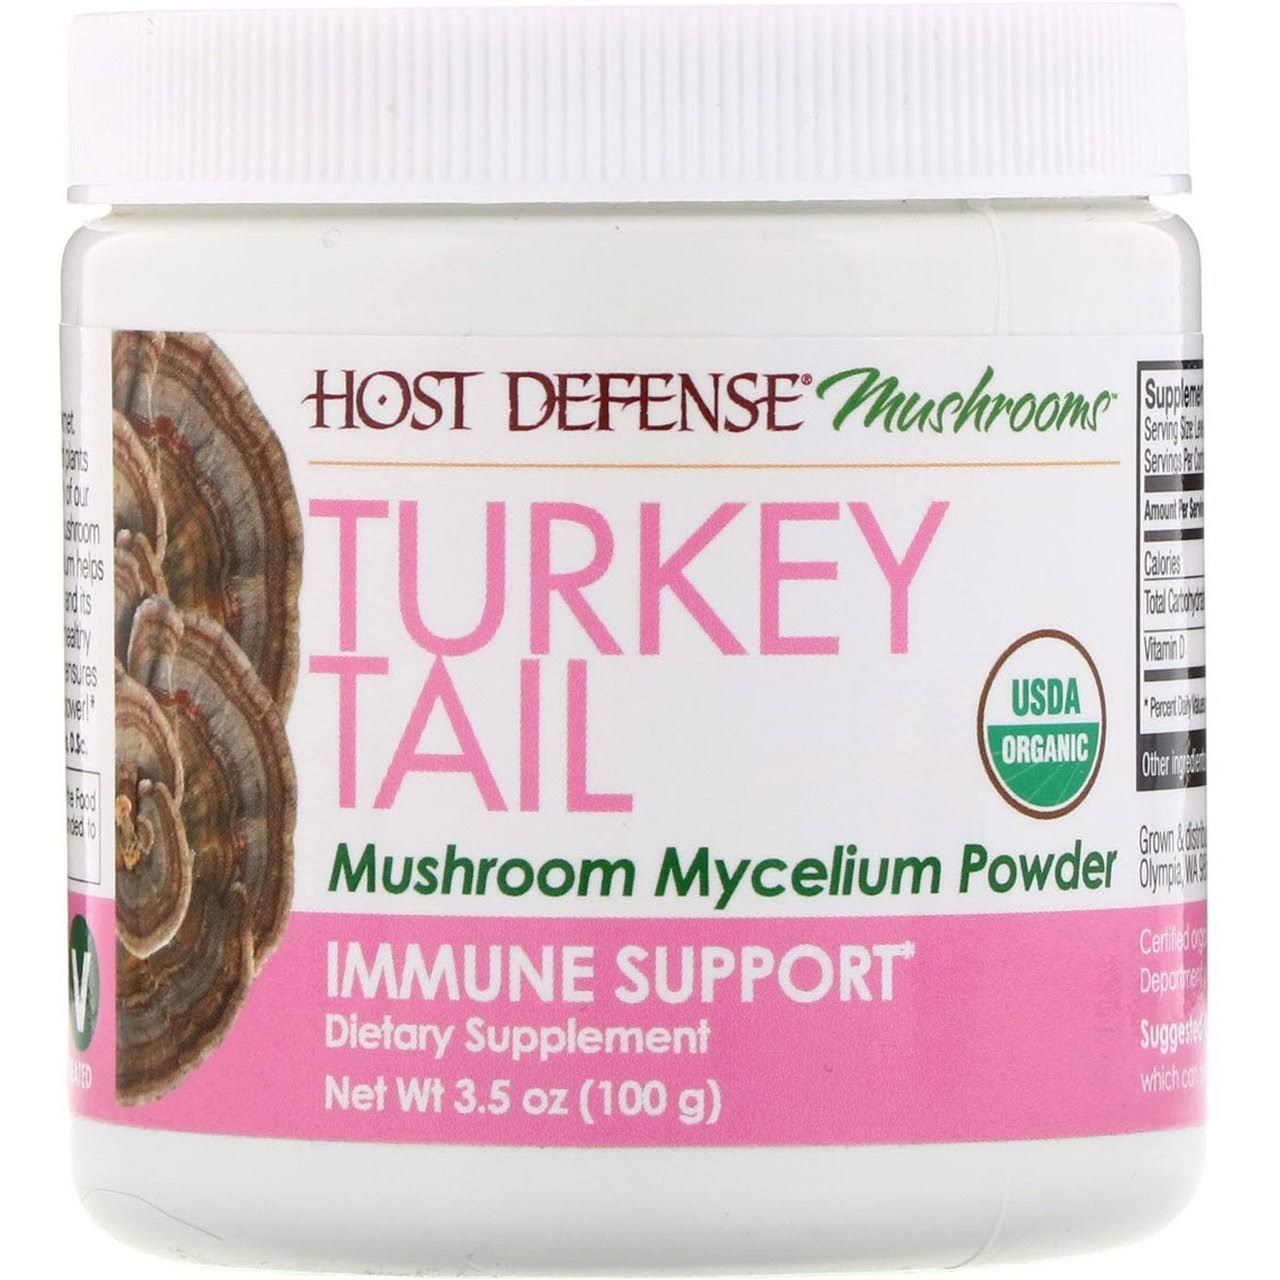 Host Defense Turkey Tail Mushroom Mycelium Powder 3.5oz